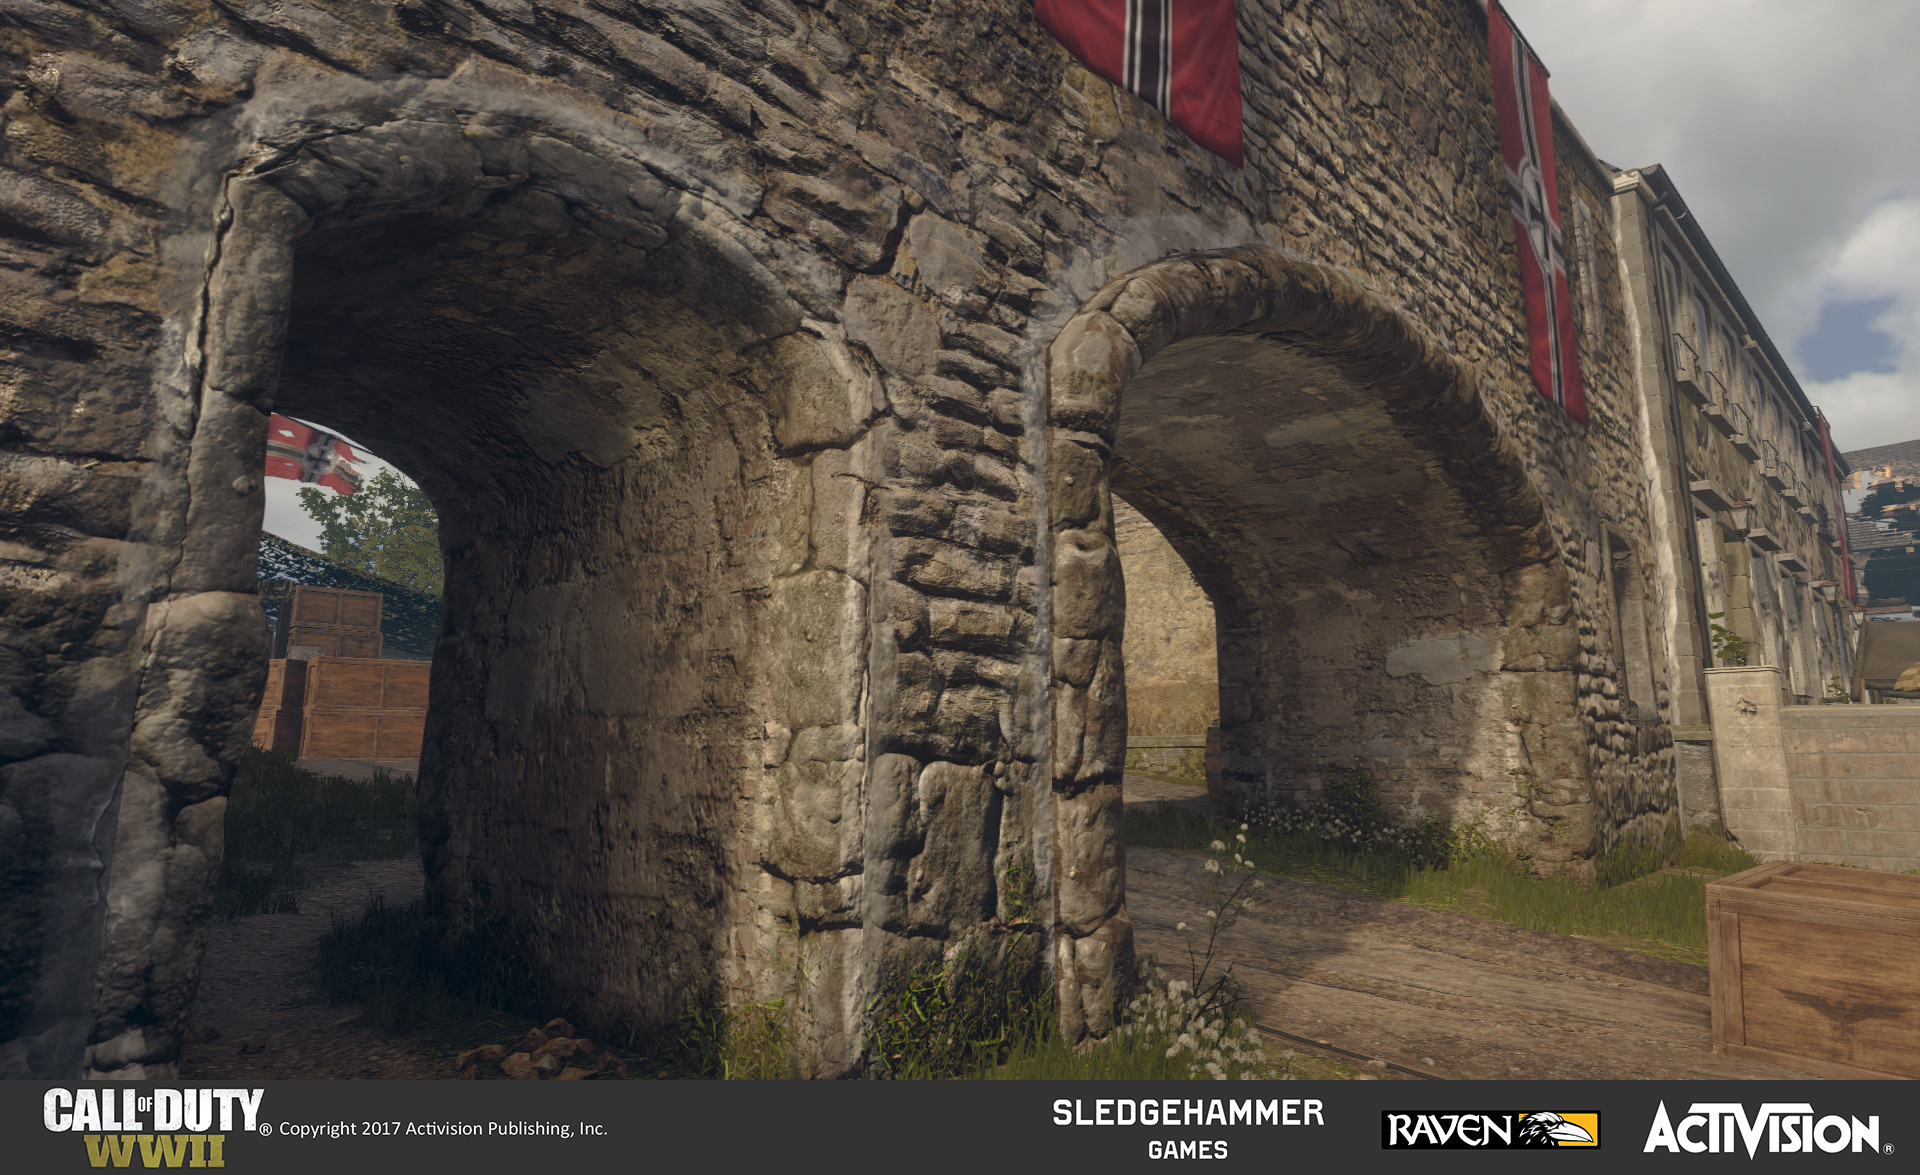 Worked on geometry and blending existing materials on arched passageways for bridge.